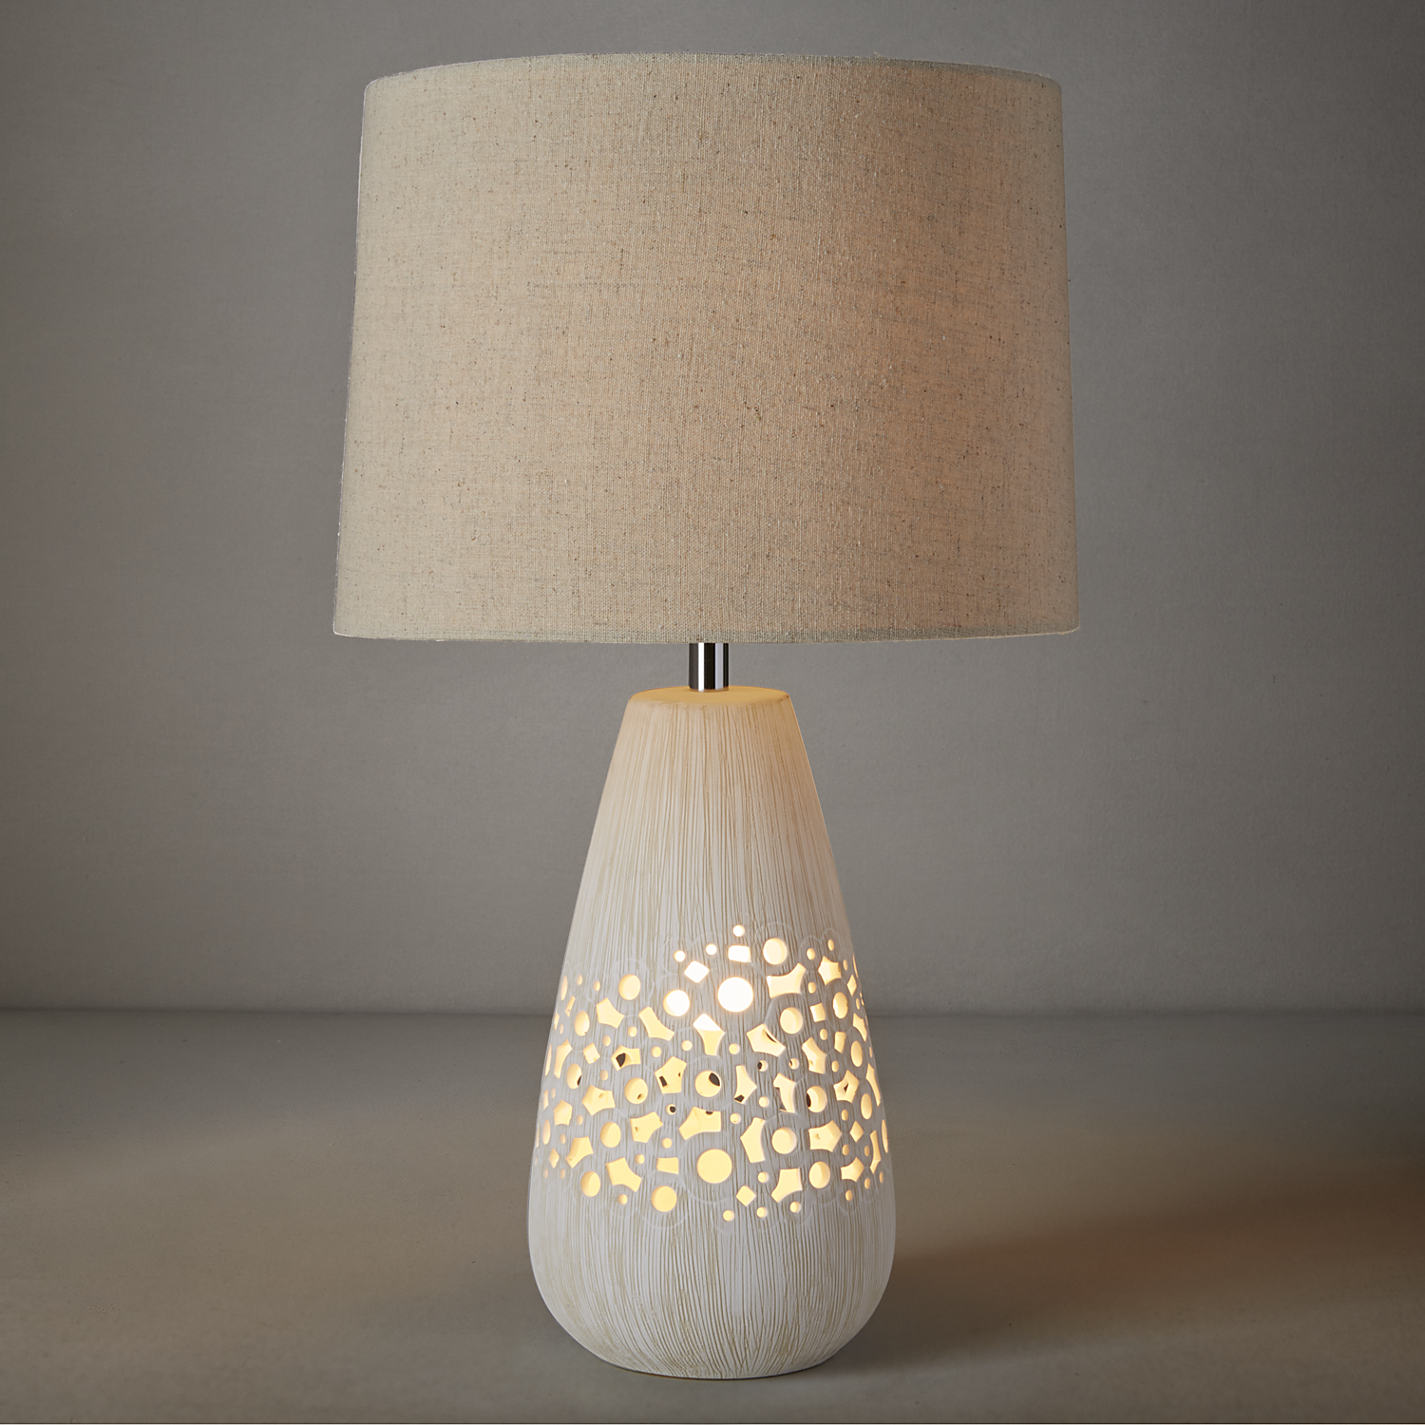 Buy john lewis melissa dual lit ceramic table lamp john lewis buy john lewis melissa dual lit ceramic table lamp online at johnlewis geotapseo Image collections